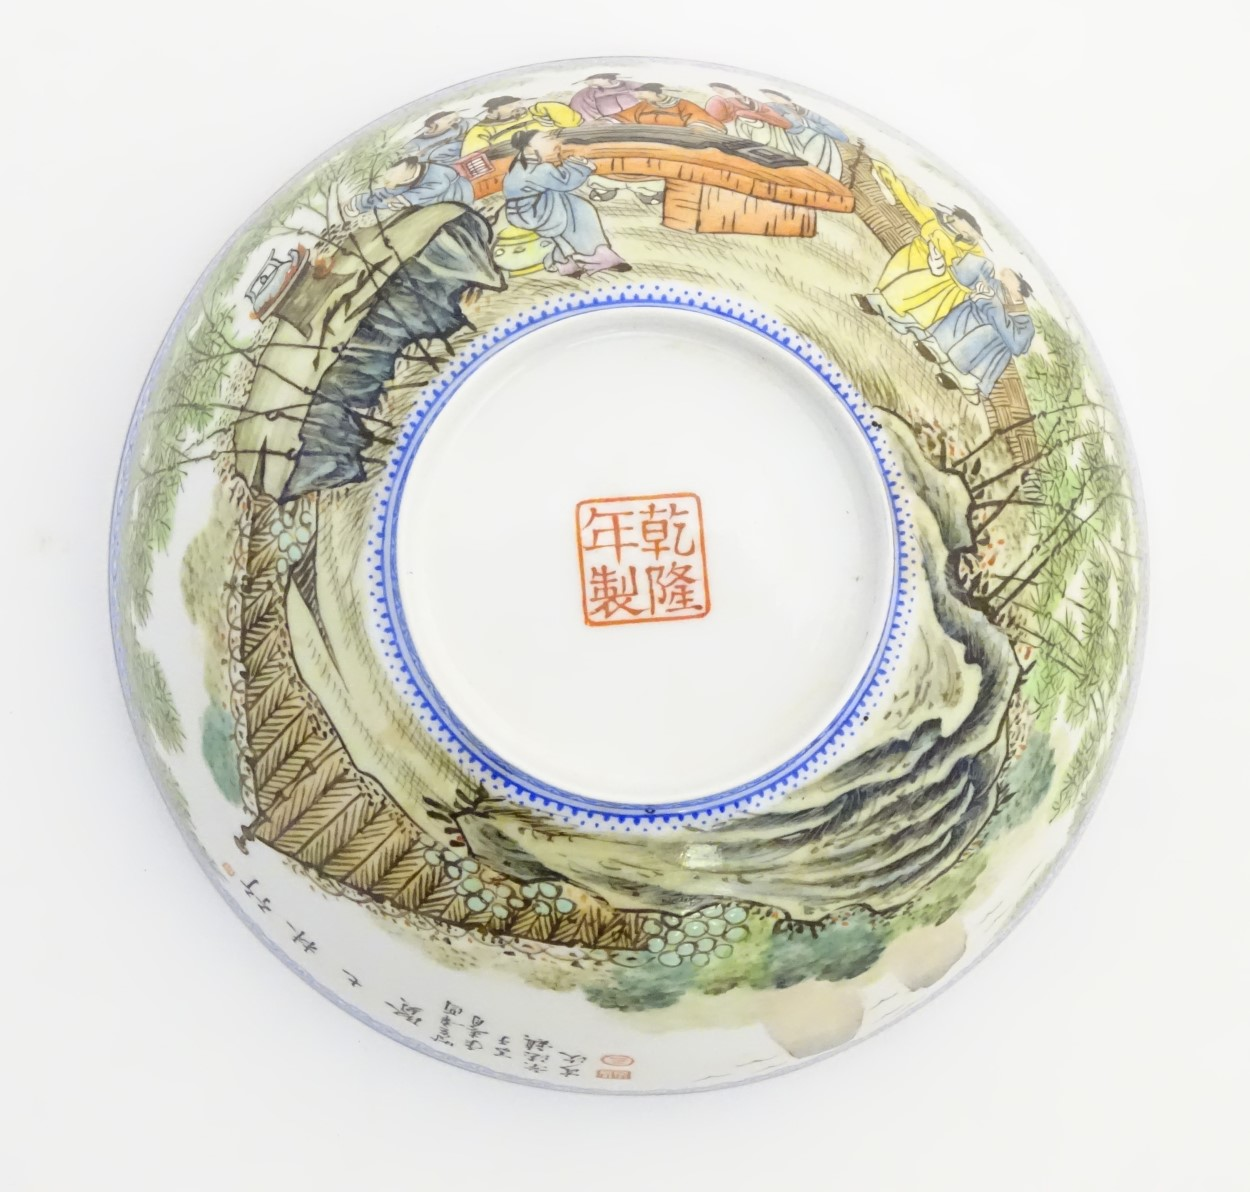 Lot 10 - A Chinese eggshell bowl depicting oriental figures watching a guqin performance in a landscape.